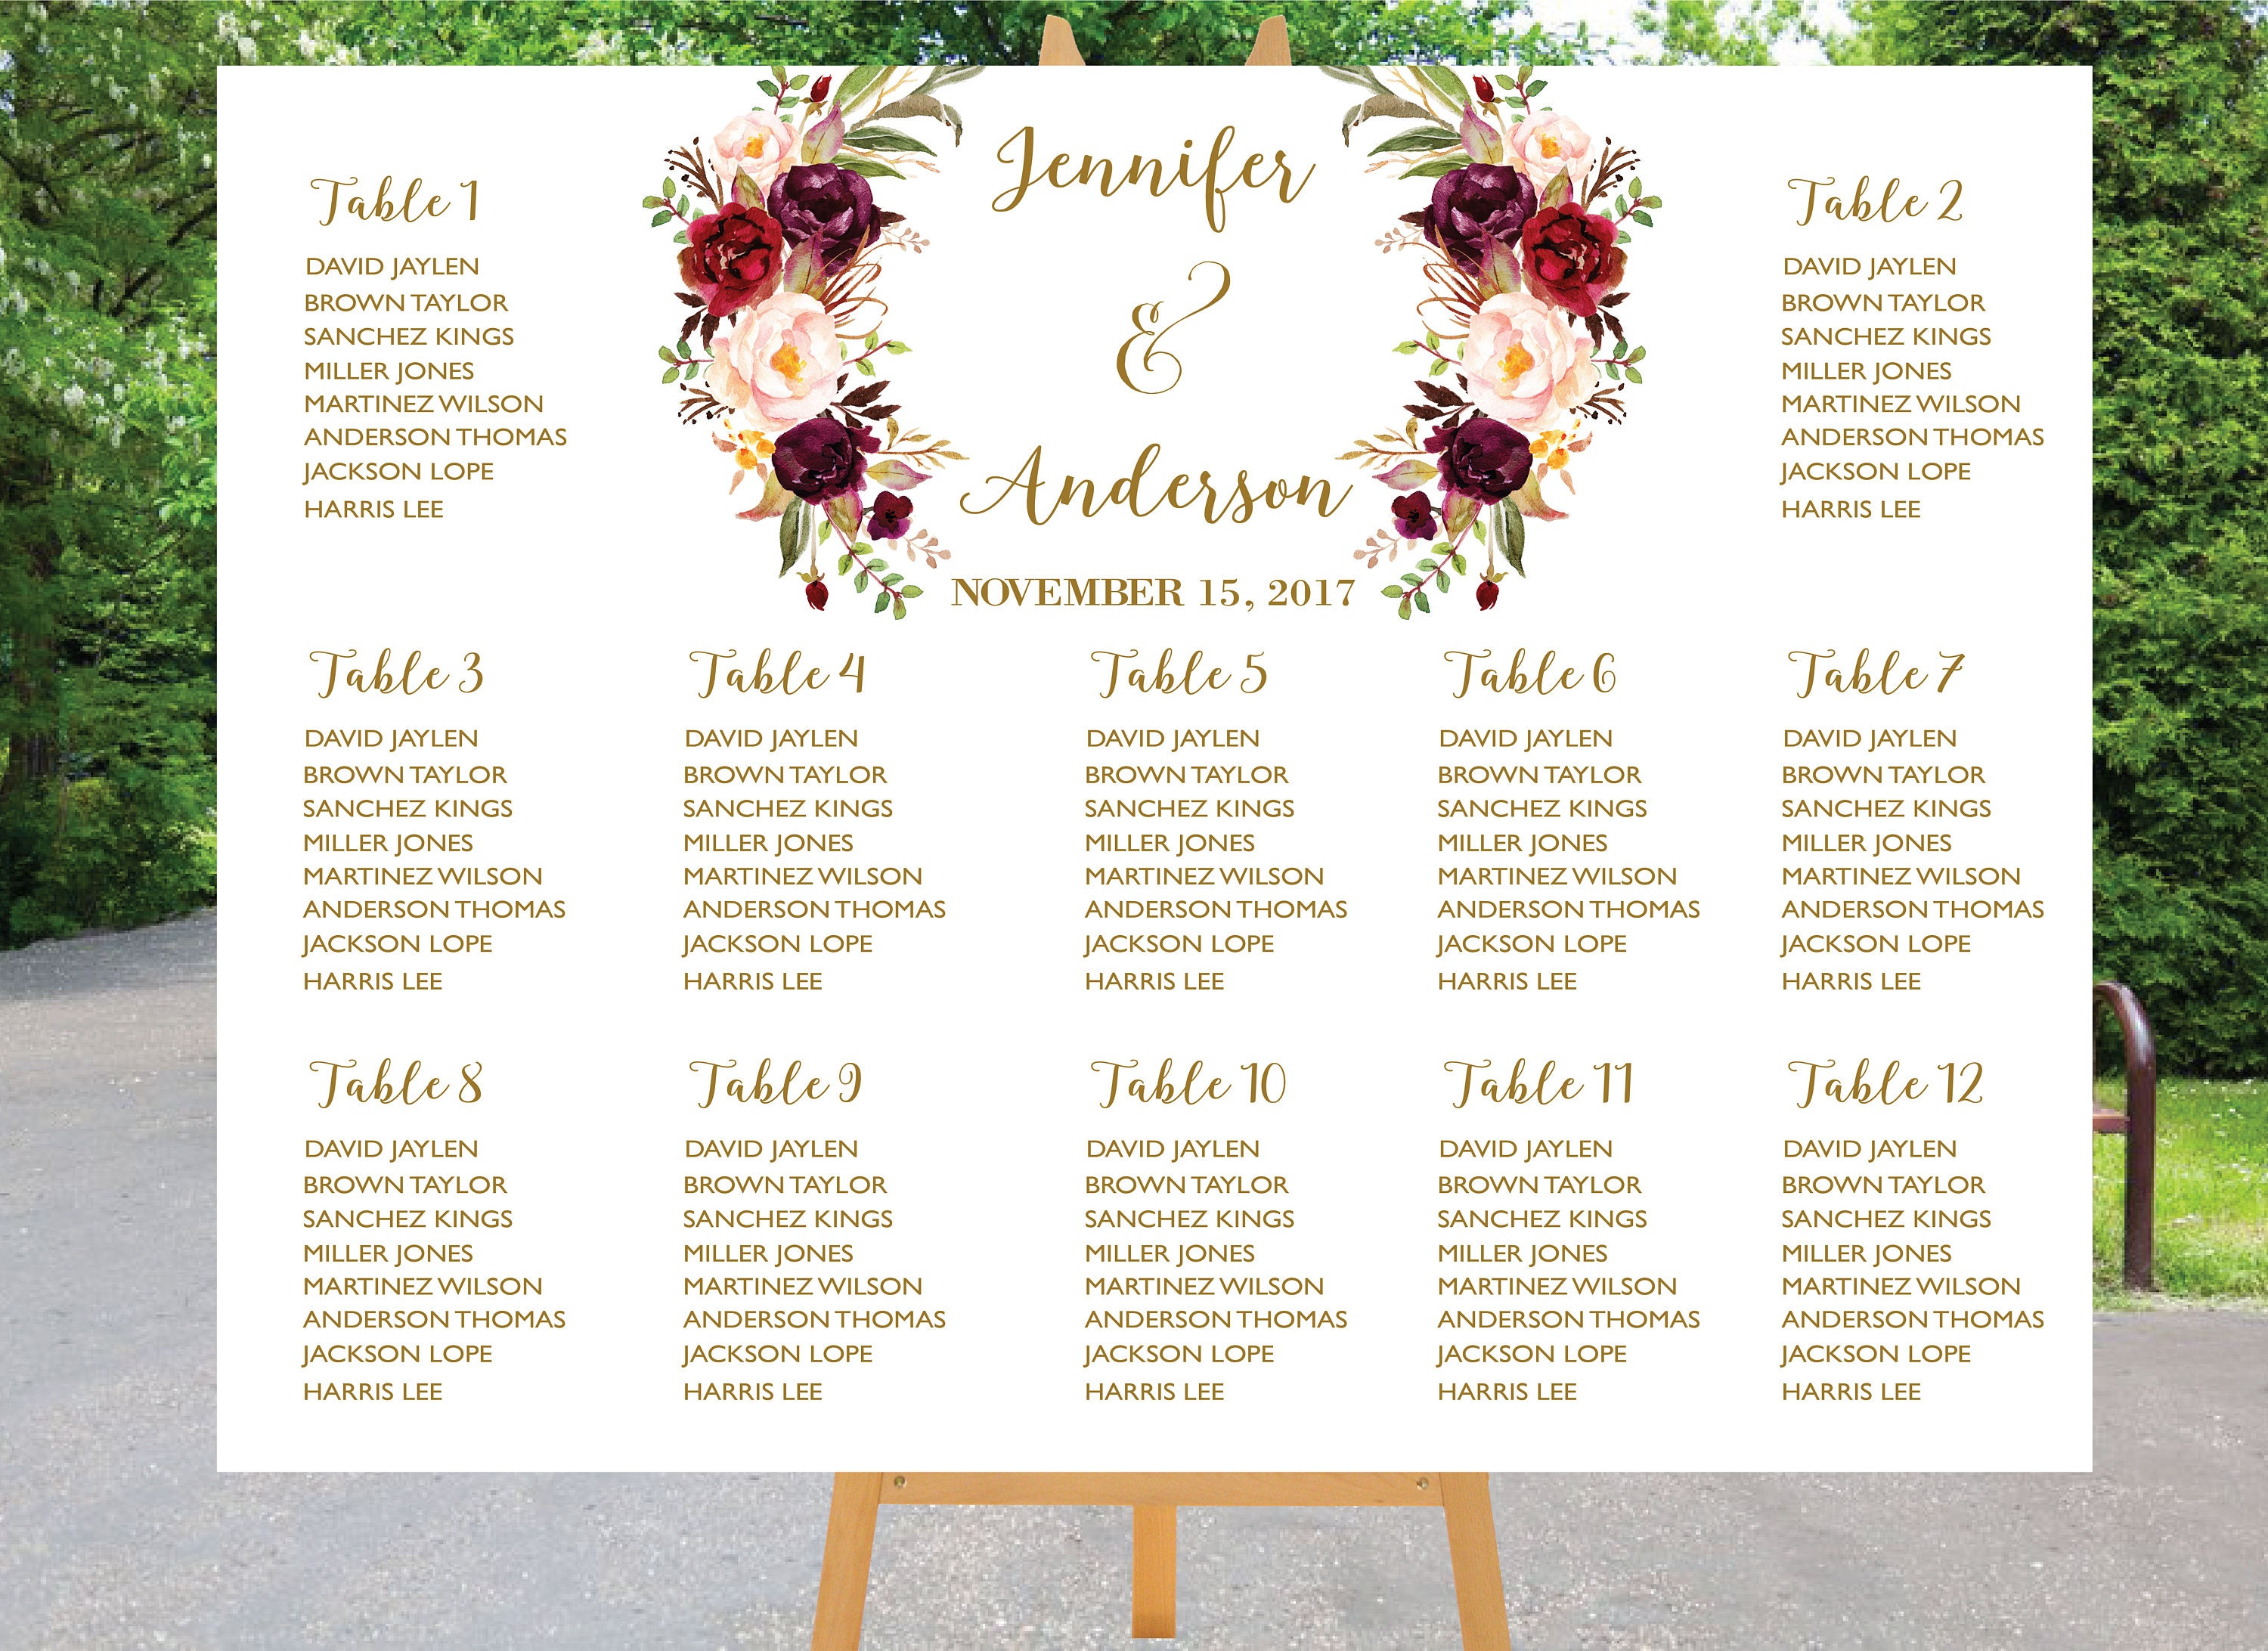 table assignment chart